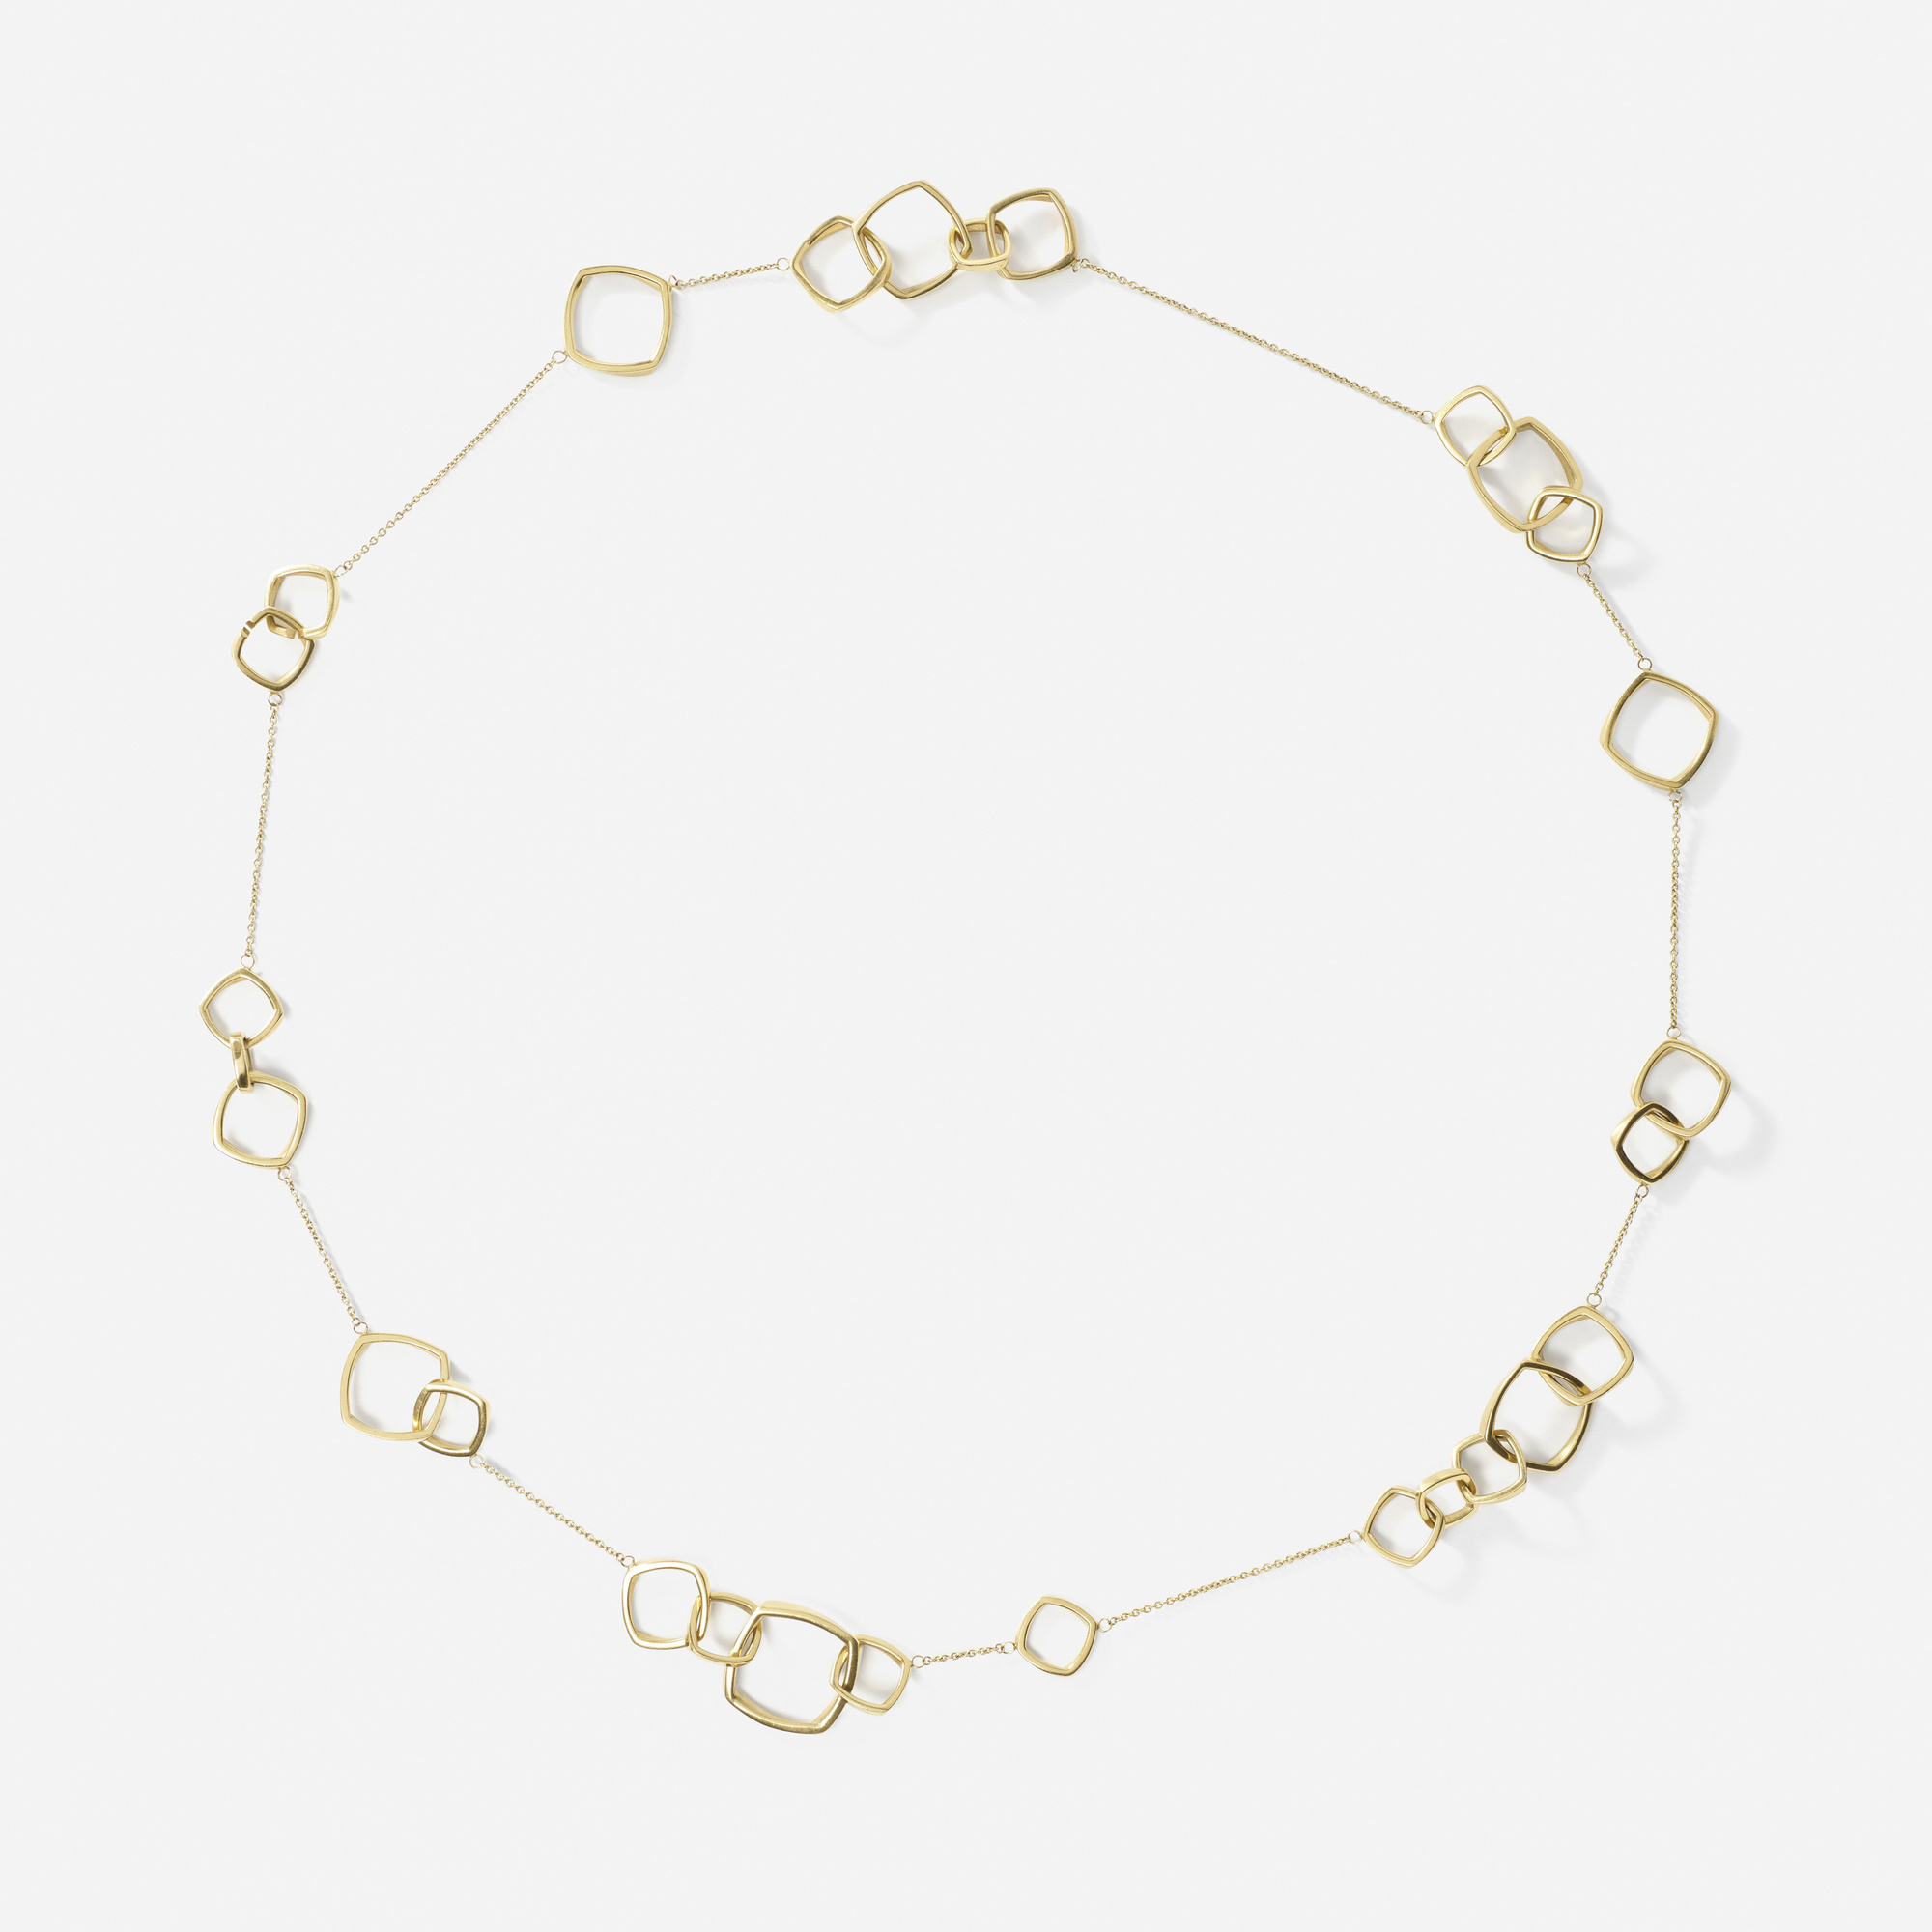 100: Frank Gehry for Tiffany & Co. / A gold Torque necklace (1 of 2)